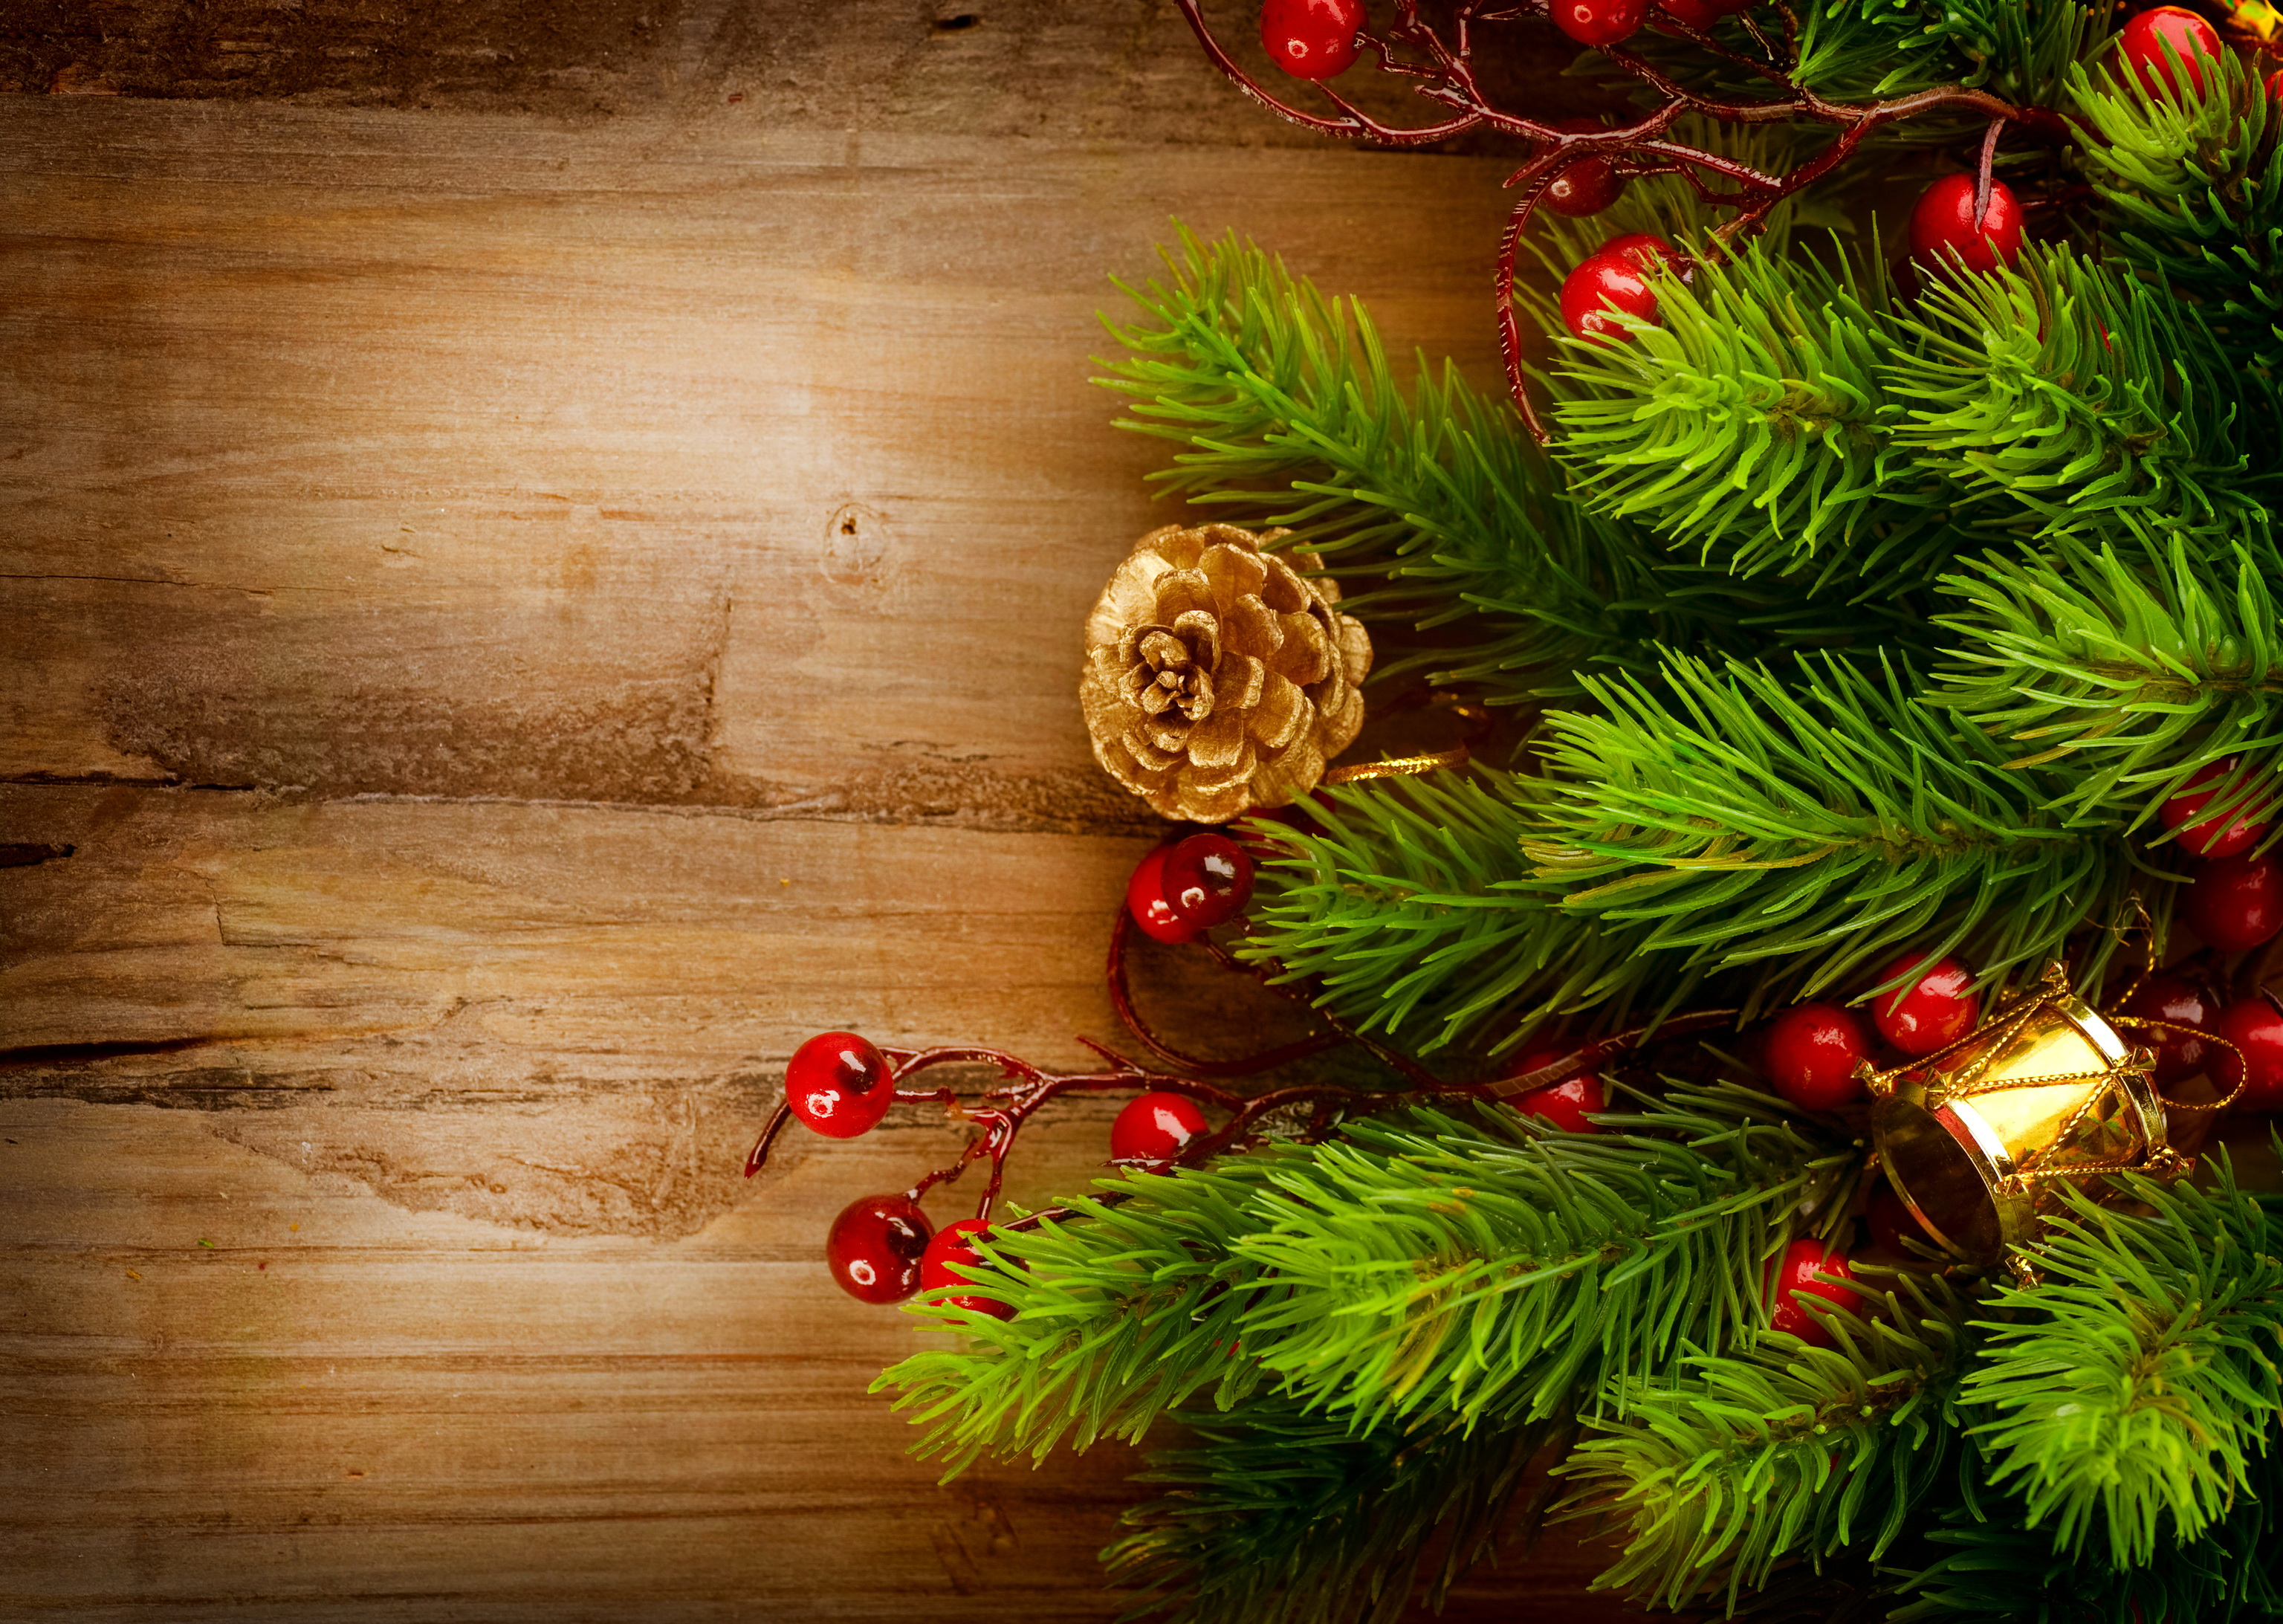 holidays christmas   new year   branches pine cone wallpaper 3072x2185 178471 wallpaperup christmas lights border clip art free christmas lights border clip art free